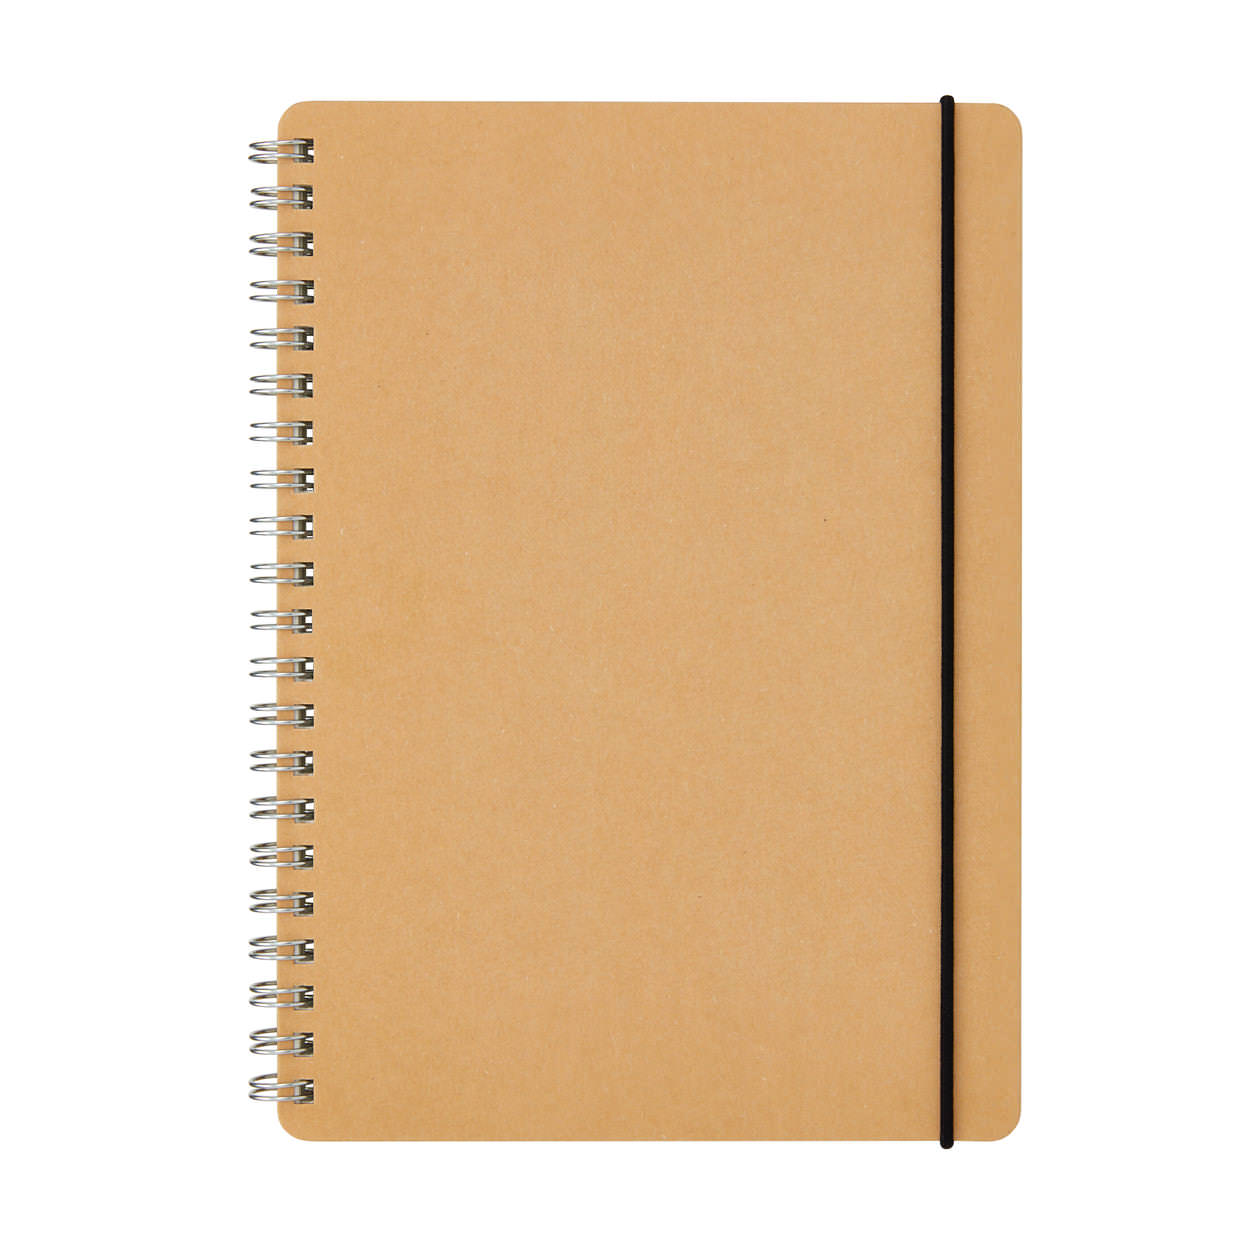 A6 Double Ring Notebook Dotted Paper